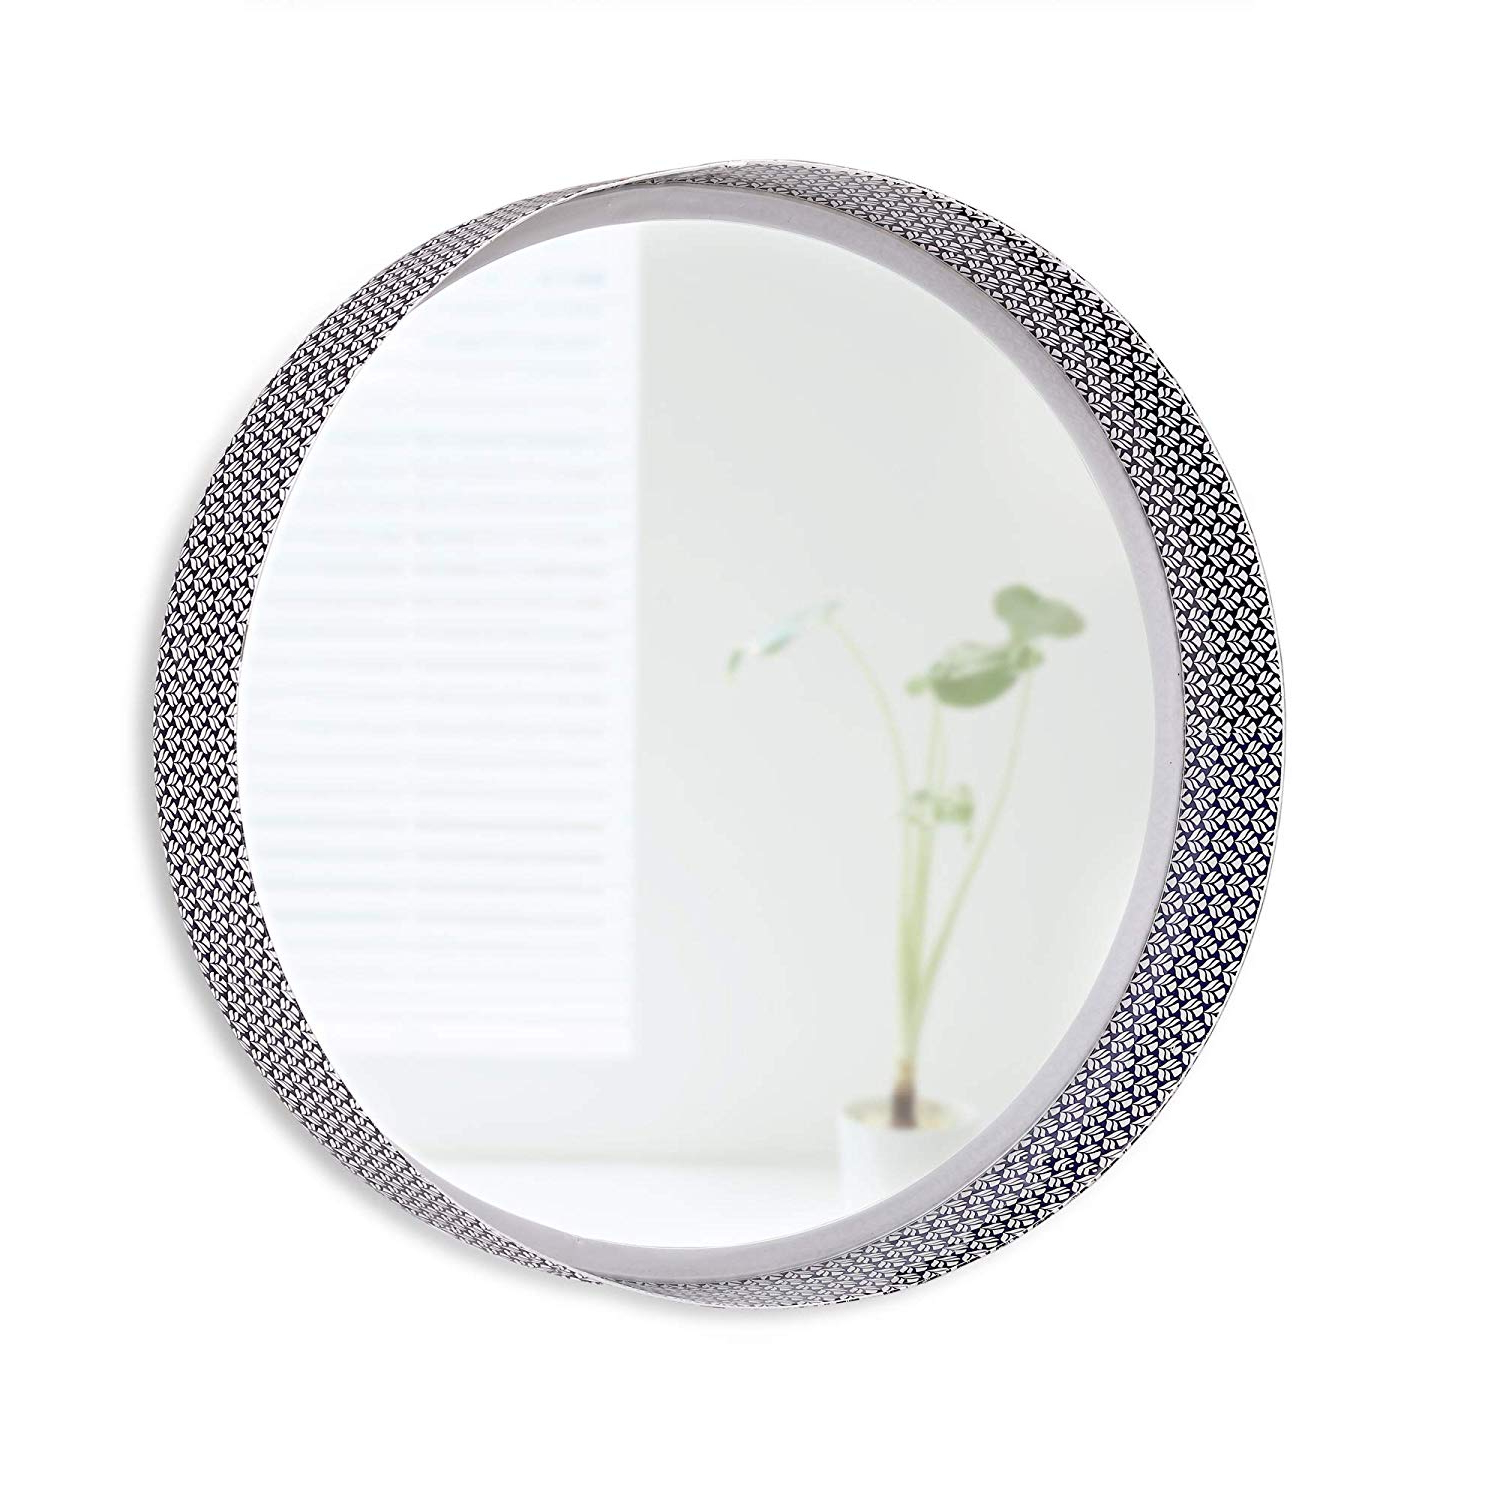 Amazon: Folkulture Decorative Wall Mirror Or Round Mirror For With Current Decorative Bedroom Wall Mirrors (View 3 of 20)